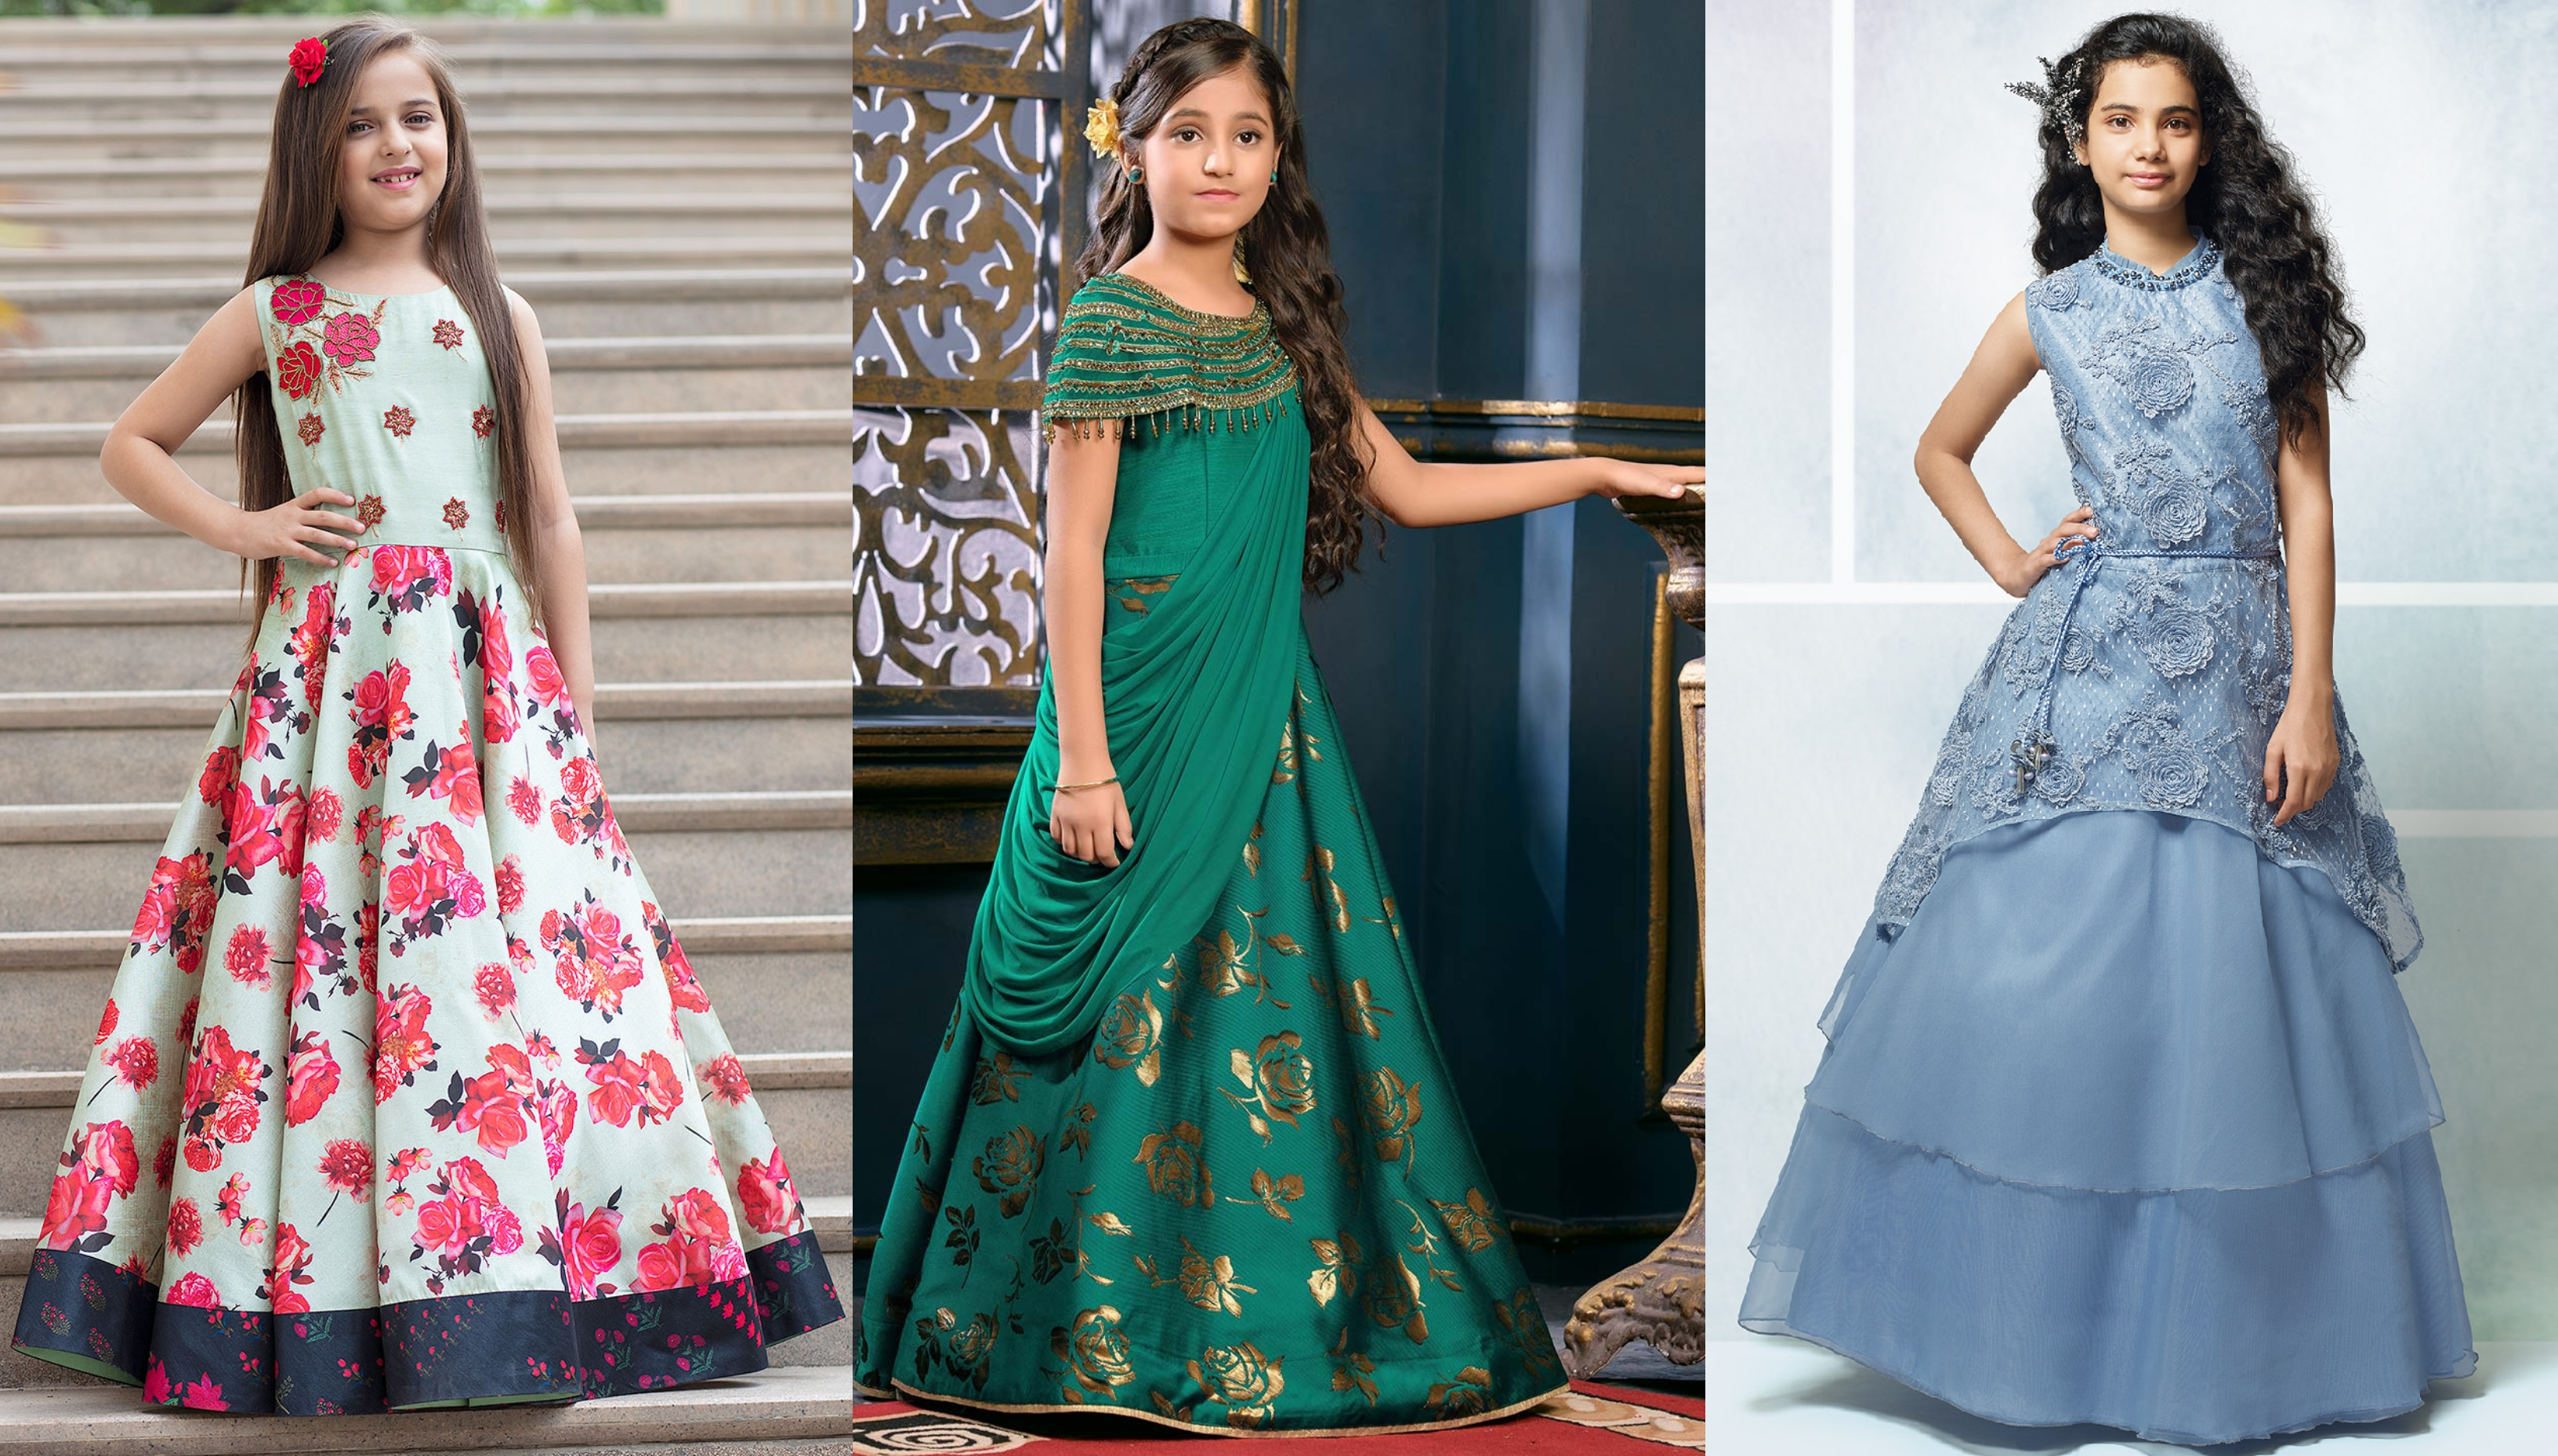 What To Wear To A Winter Wedding Indian Clothing G3 Fashion